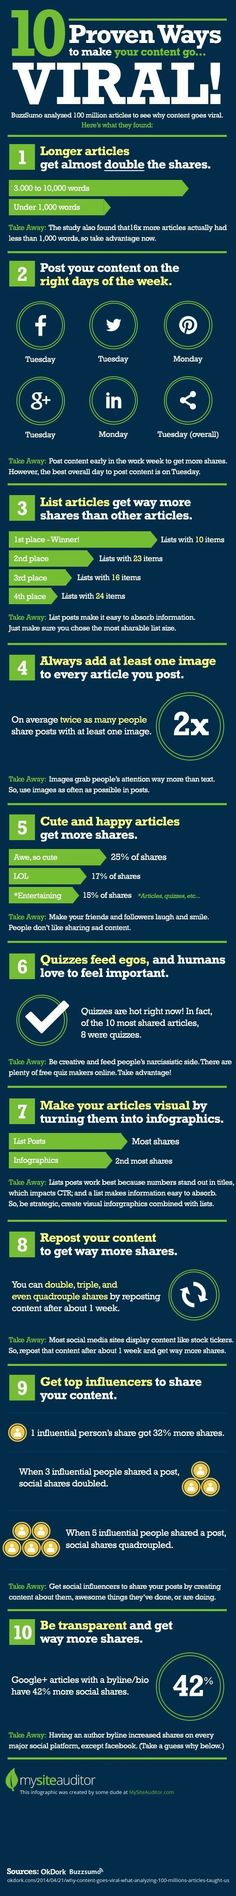 Great stats for how to make your #content go viral!